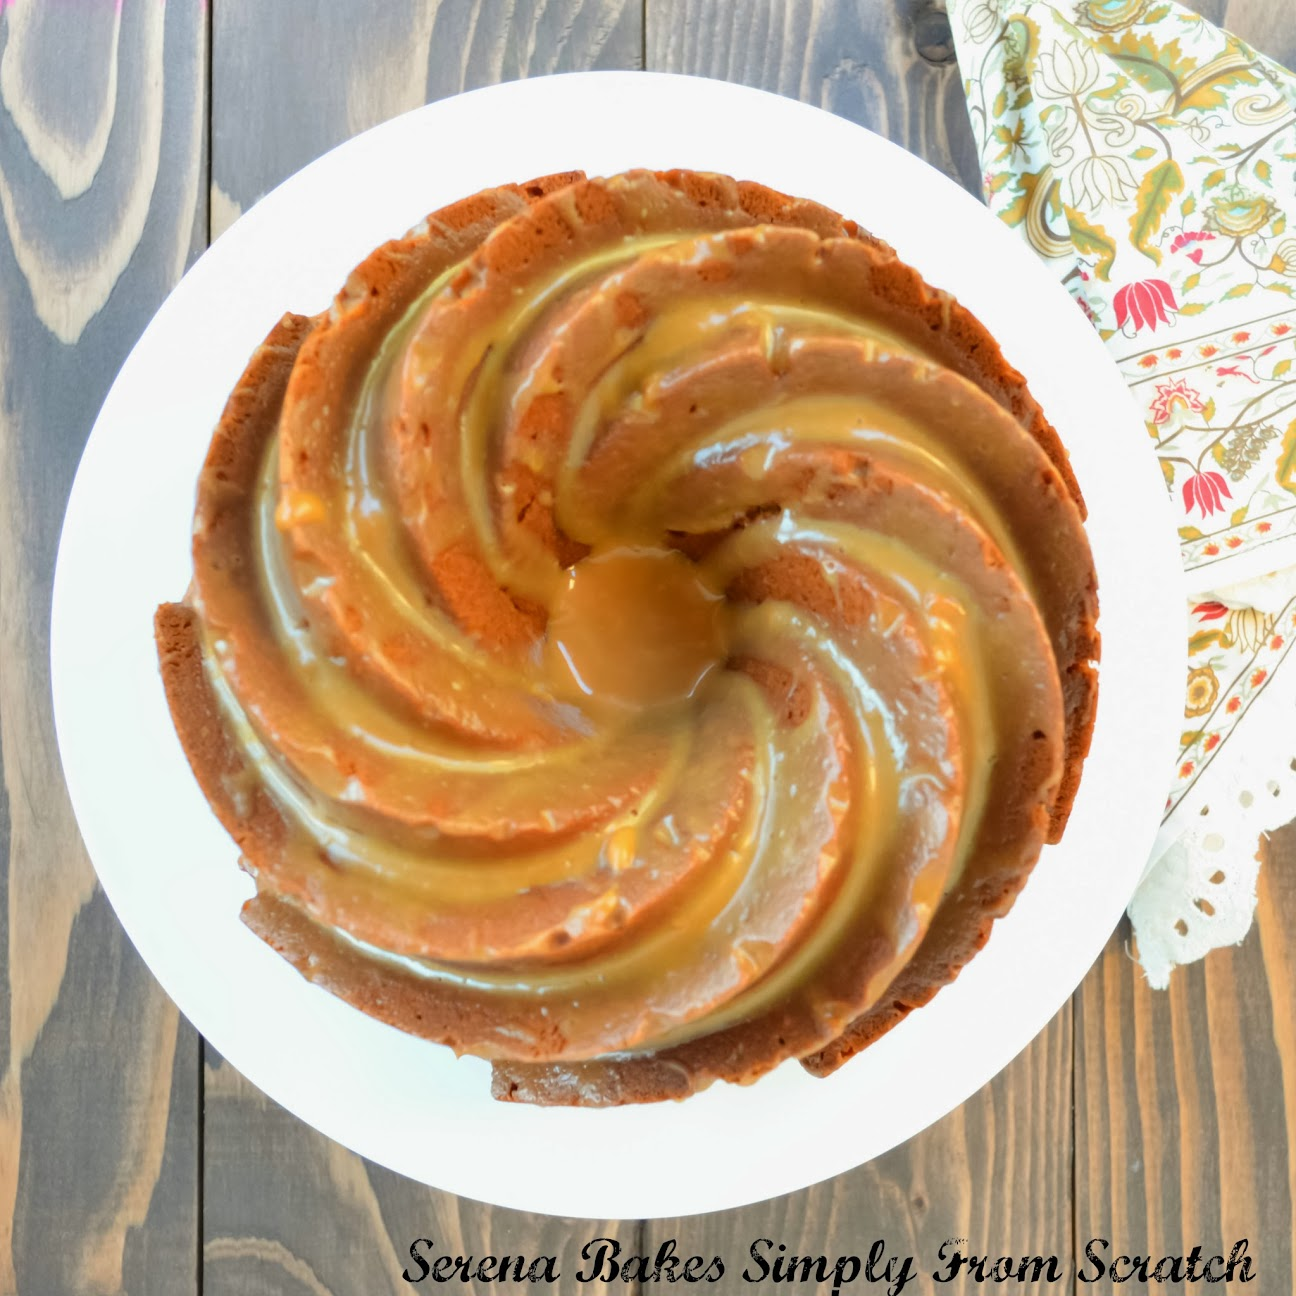 How To Drizzle Icing Over A Bundt Cake